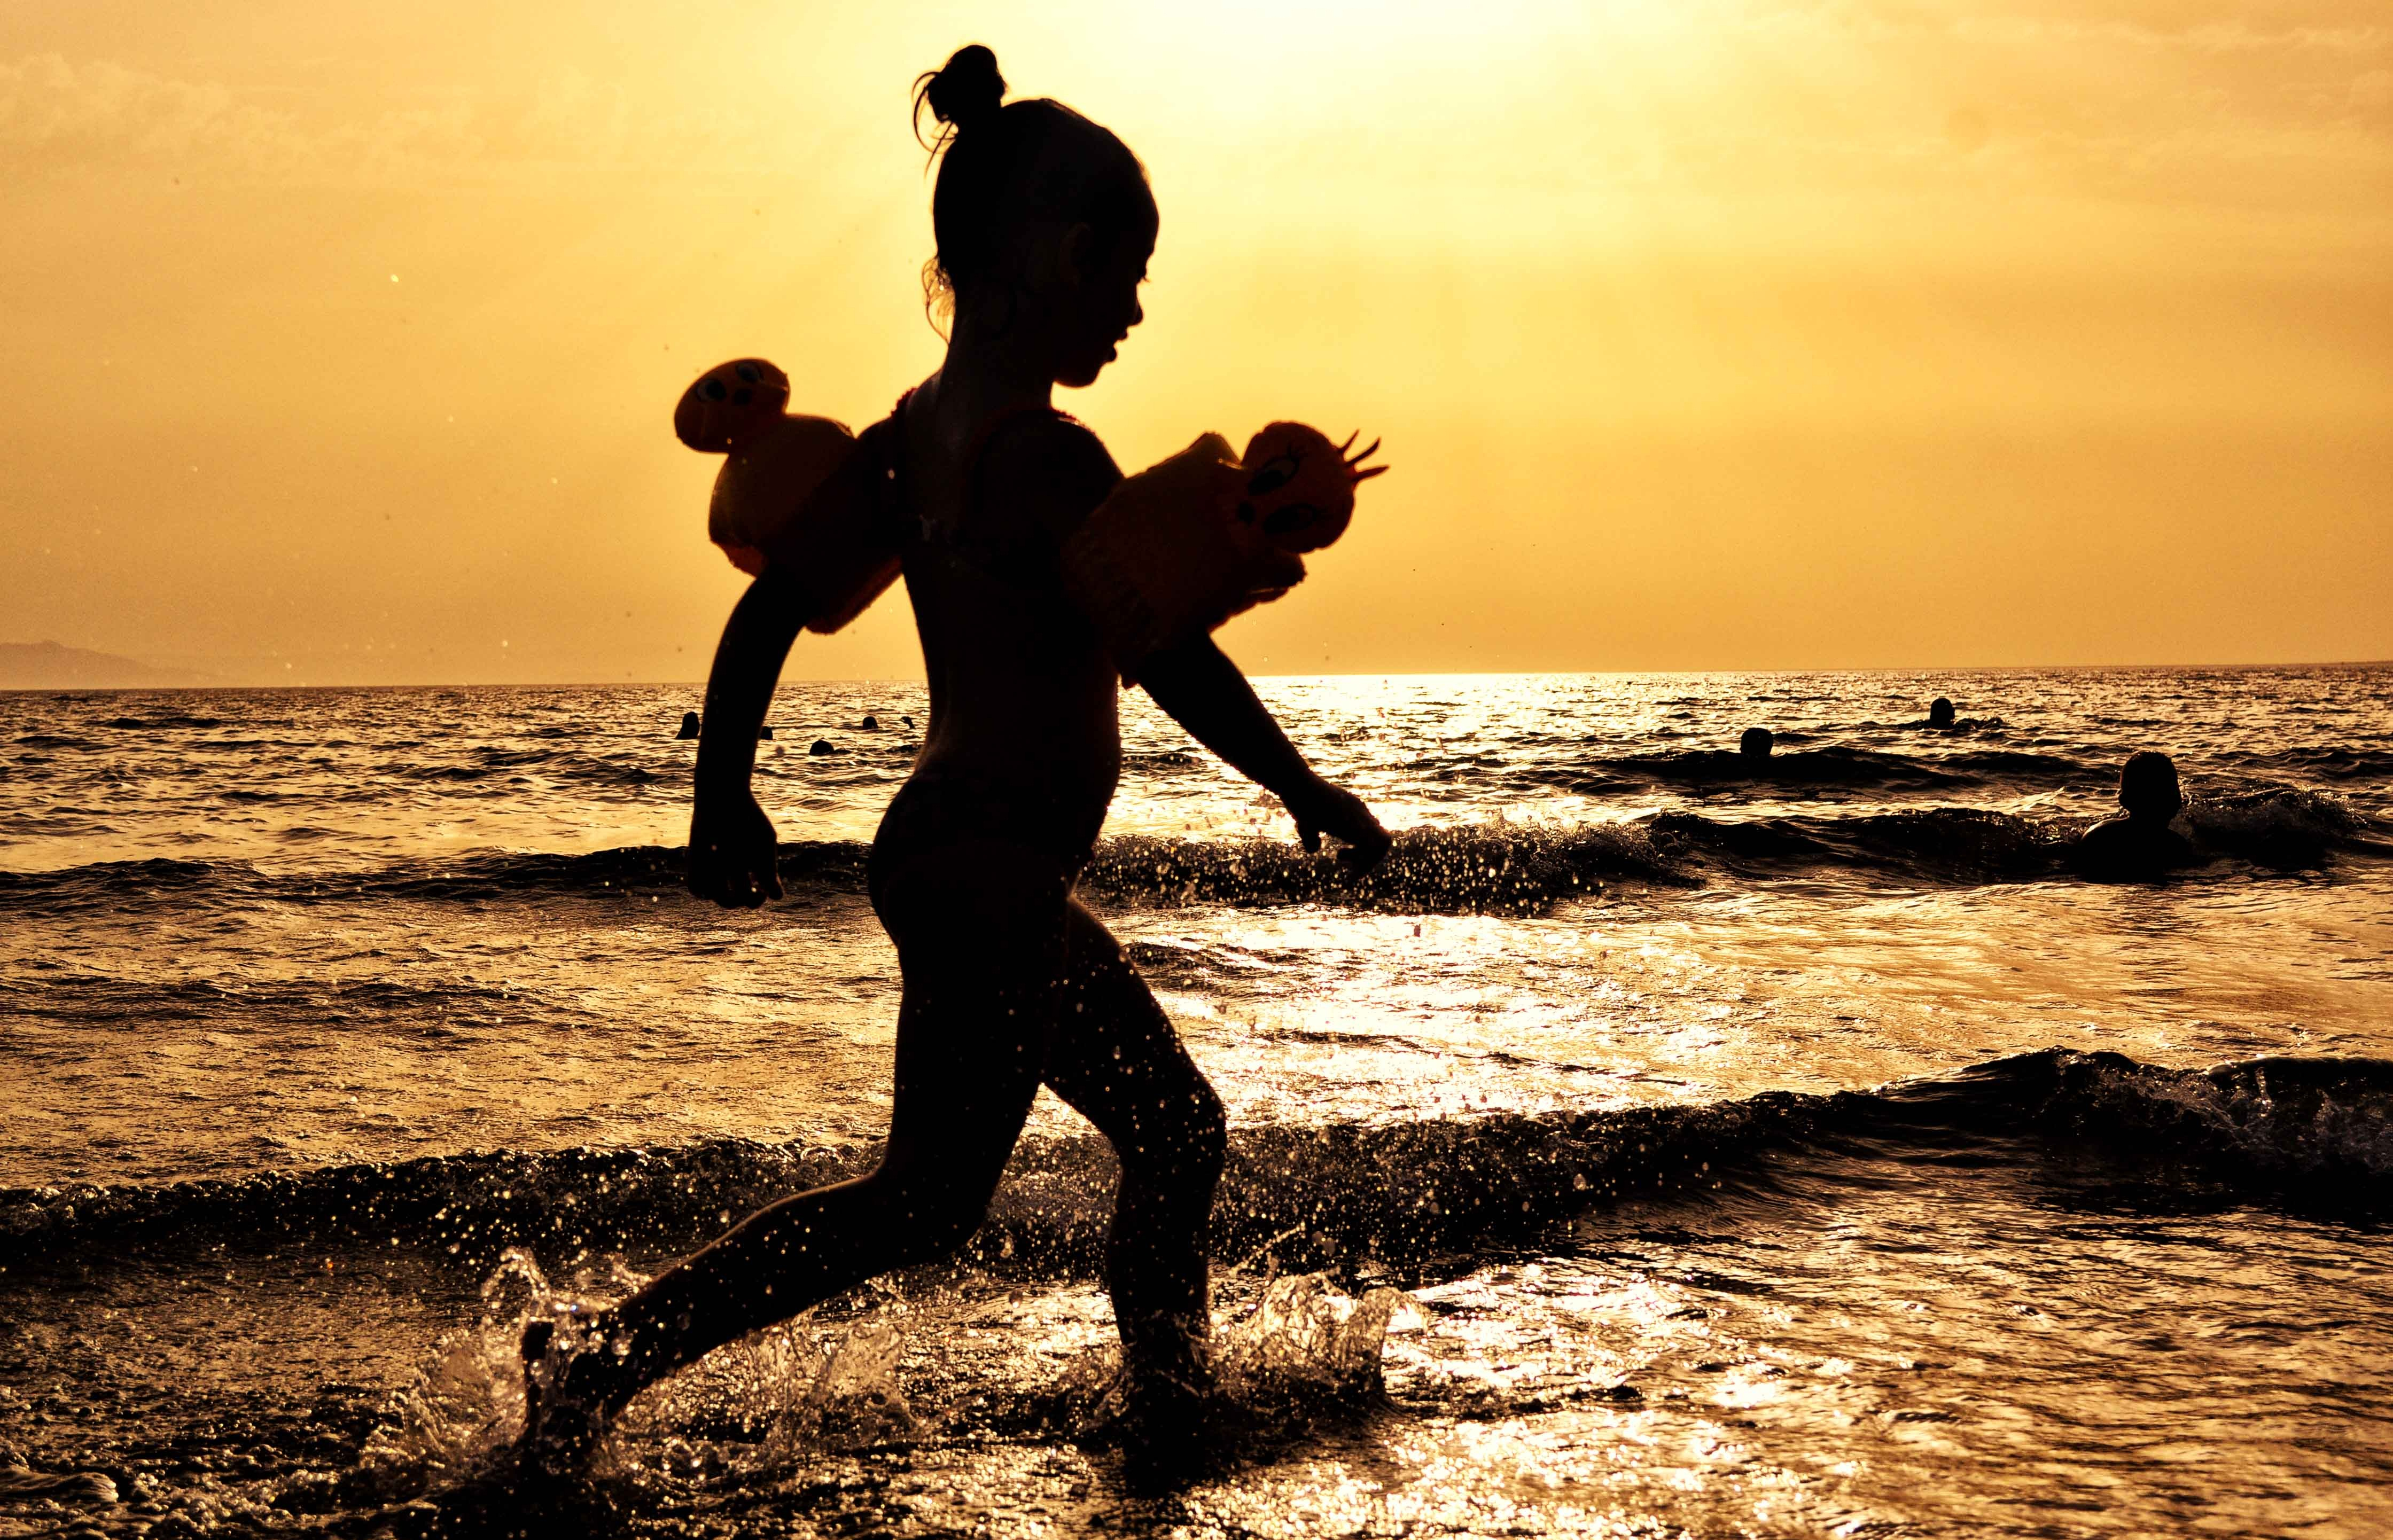 Canva - Silhouette of Girl Running on the Seashore during Golden Hour